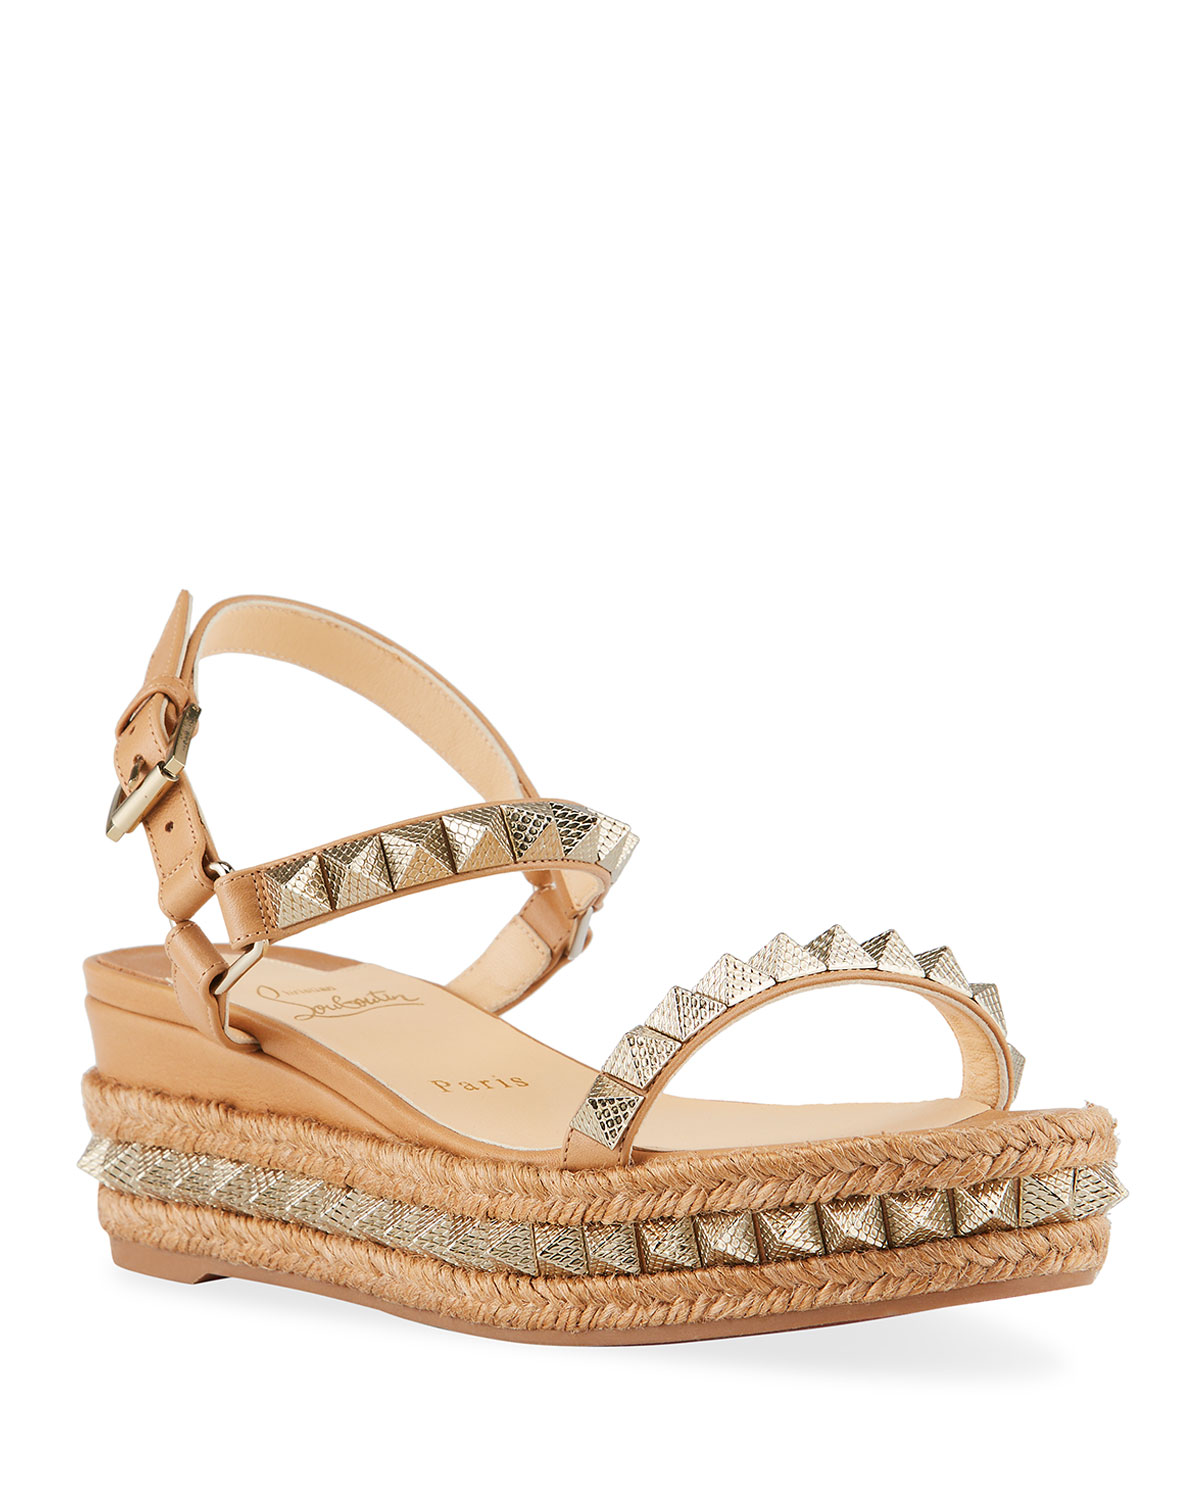 Christian Louboutin PYRACLOU SPIKE WEDGE ESPADRILLE SANDALS